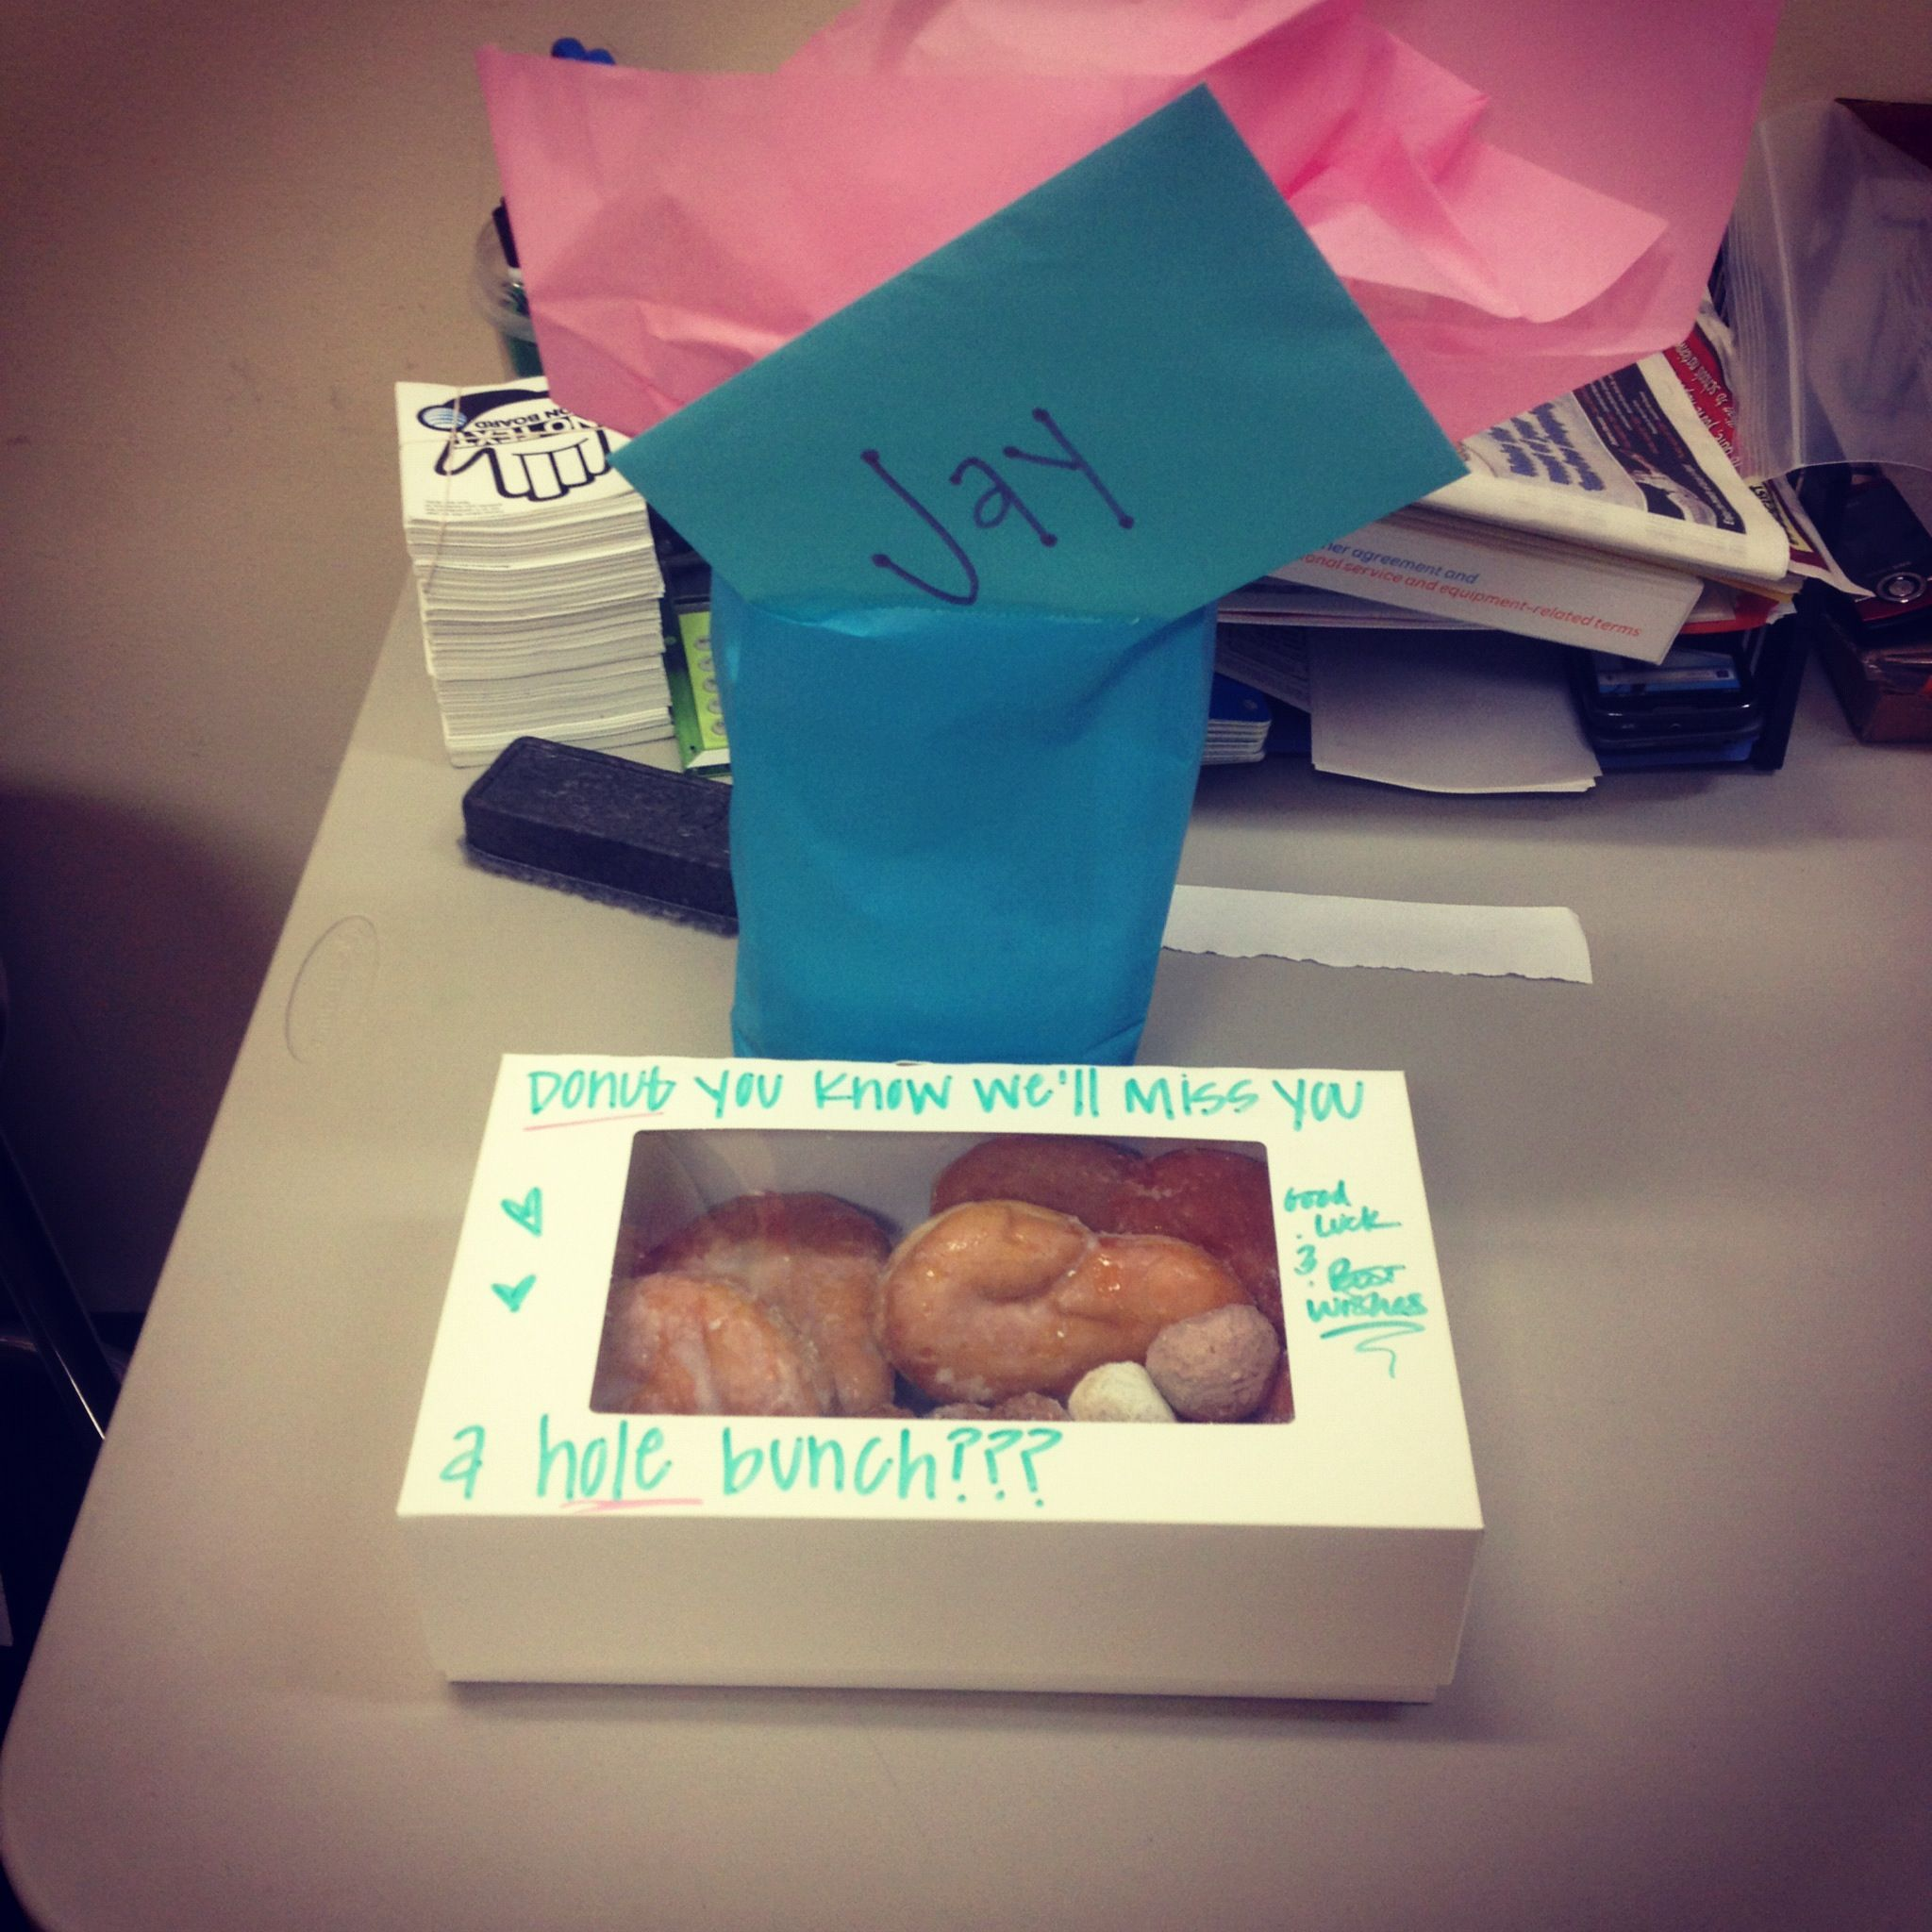 Farewell ideas for coworkers - Donut You Know We Ll Miss You A Hole Bunch Going Away Present For